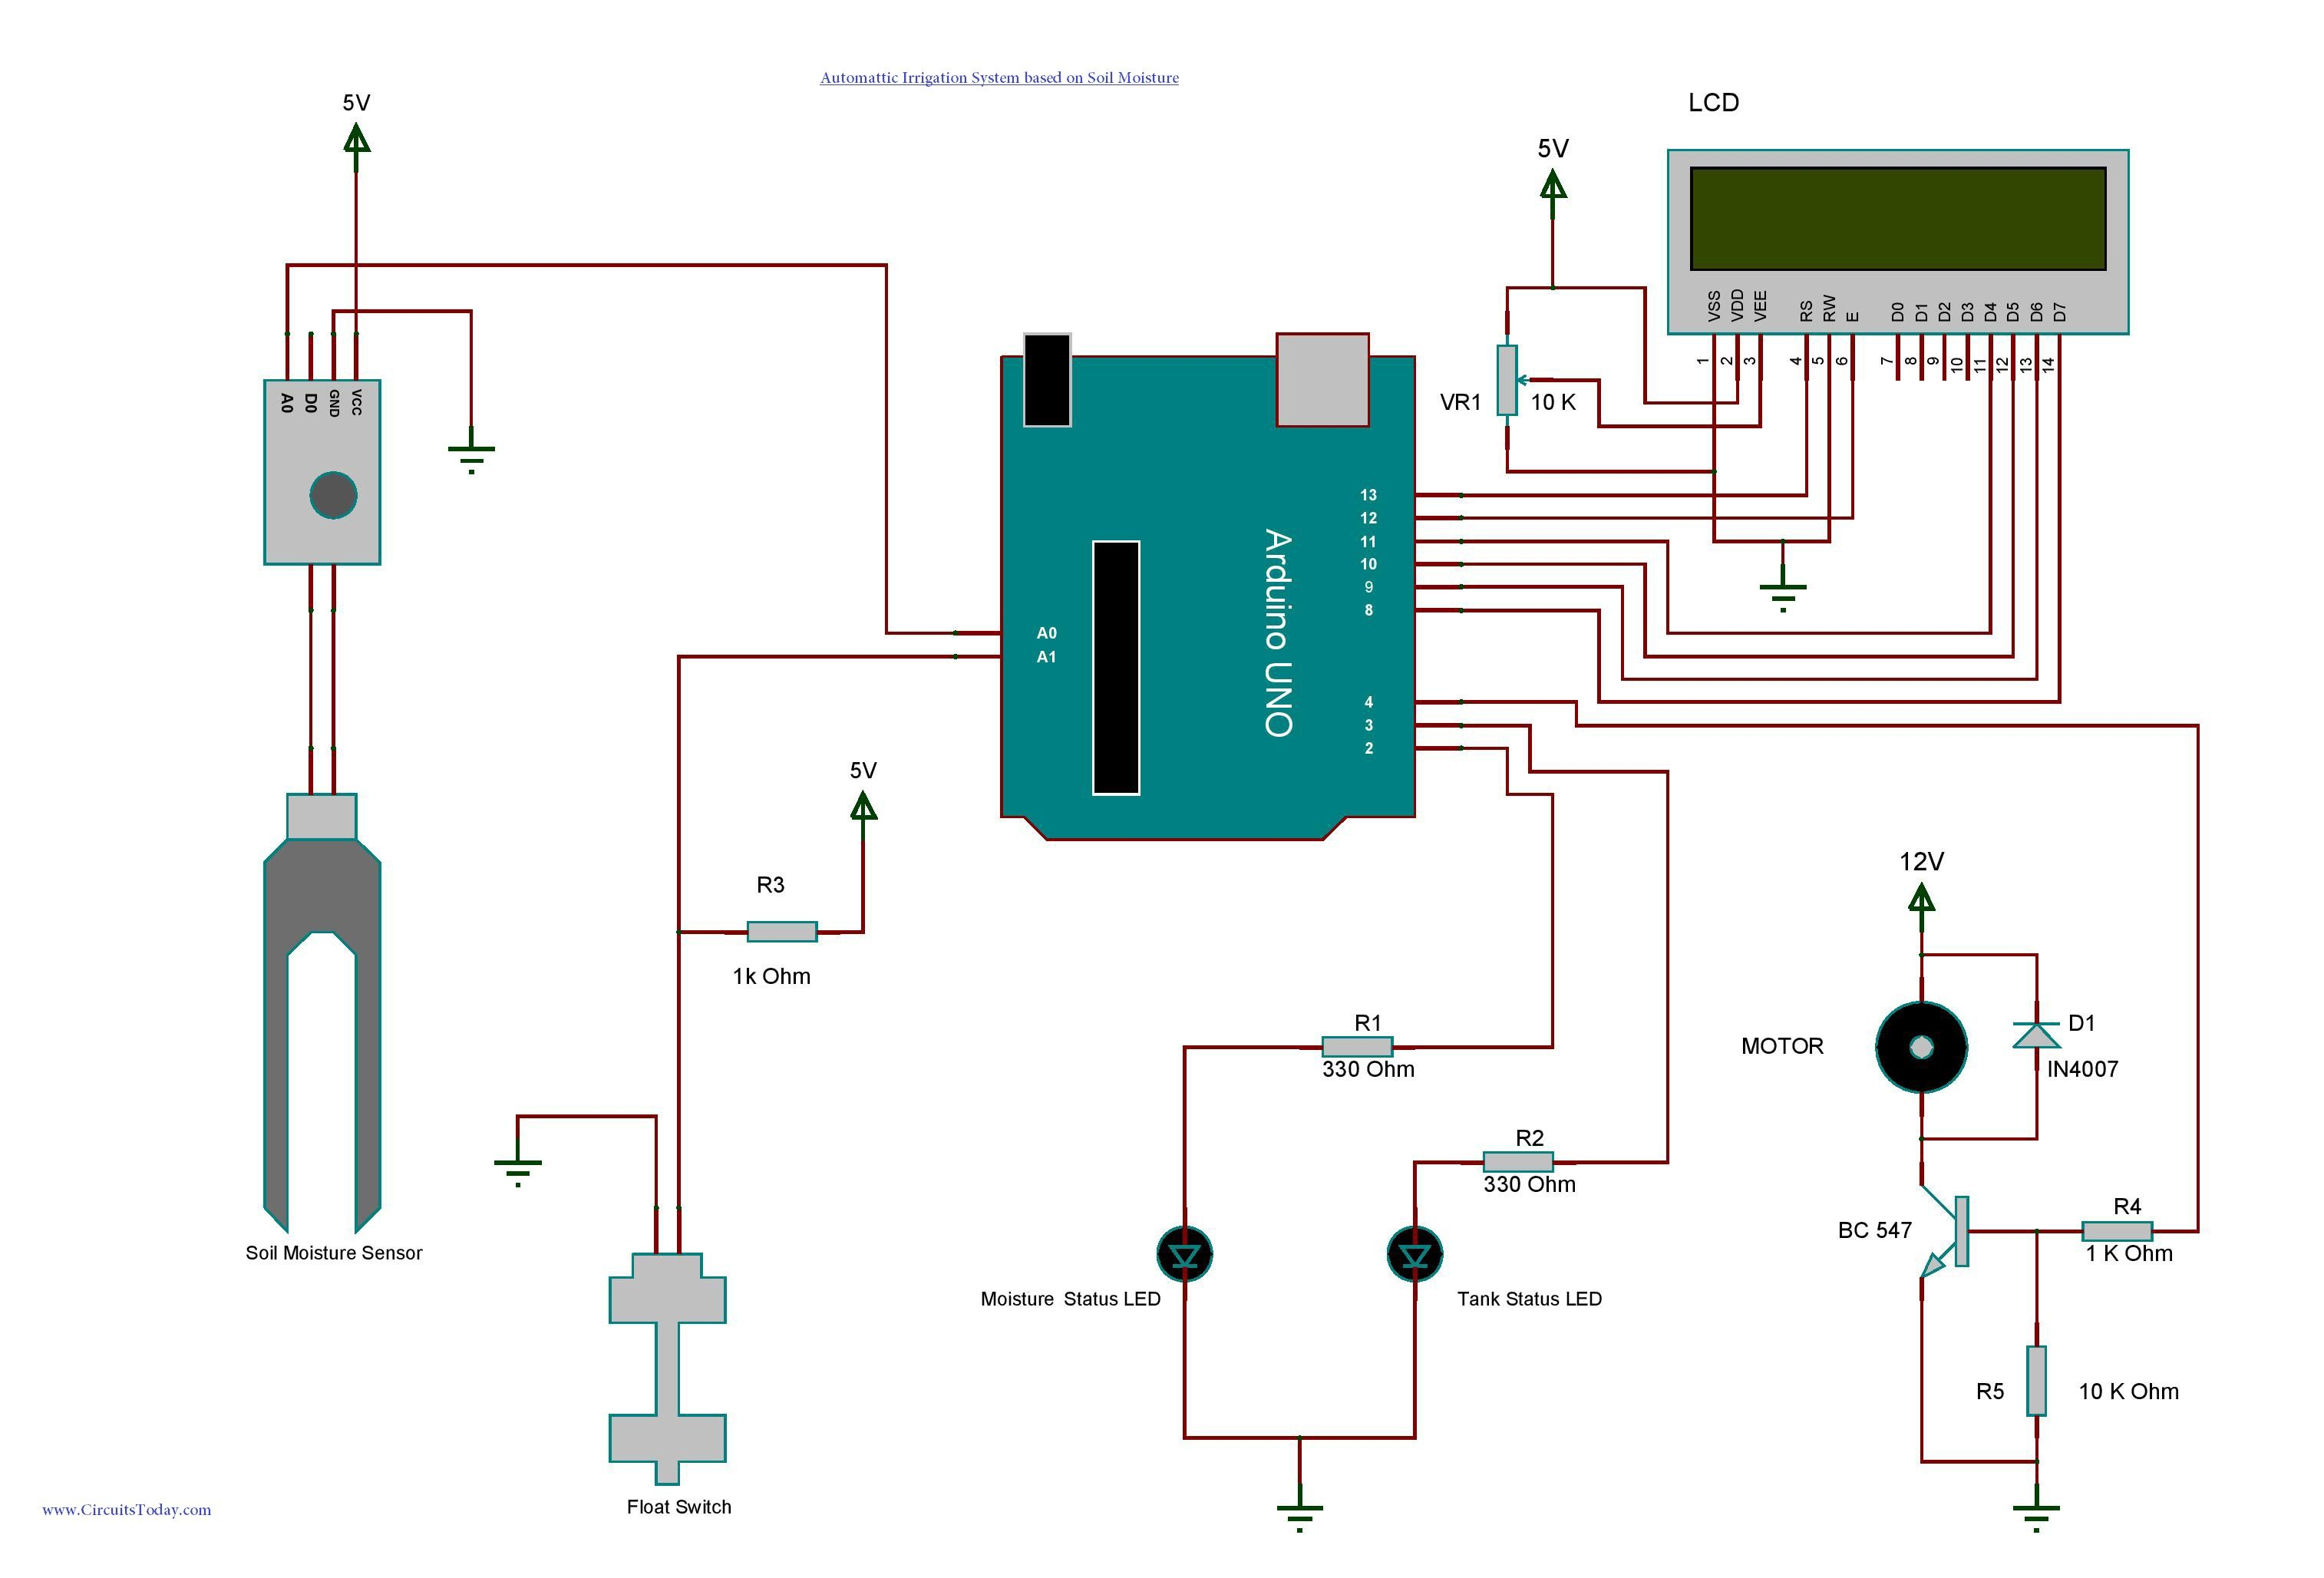 hight resolution of arduino based irrigation and automatic plant watering system using soil moisture sensor build automatic watering system for garden farm fields and lawns